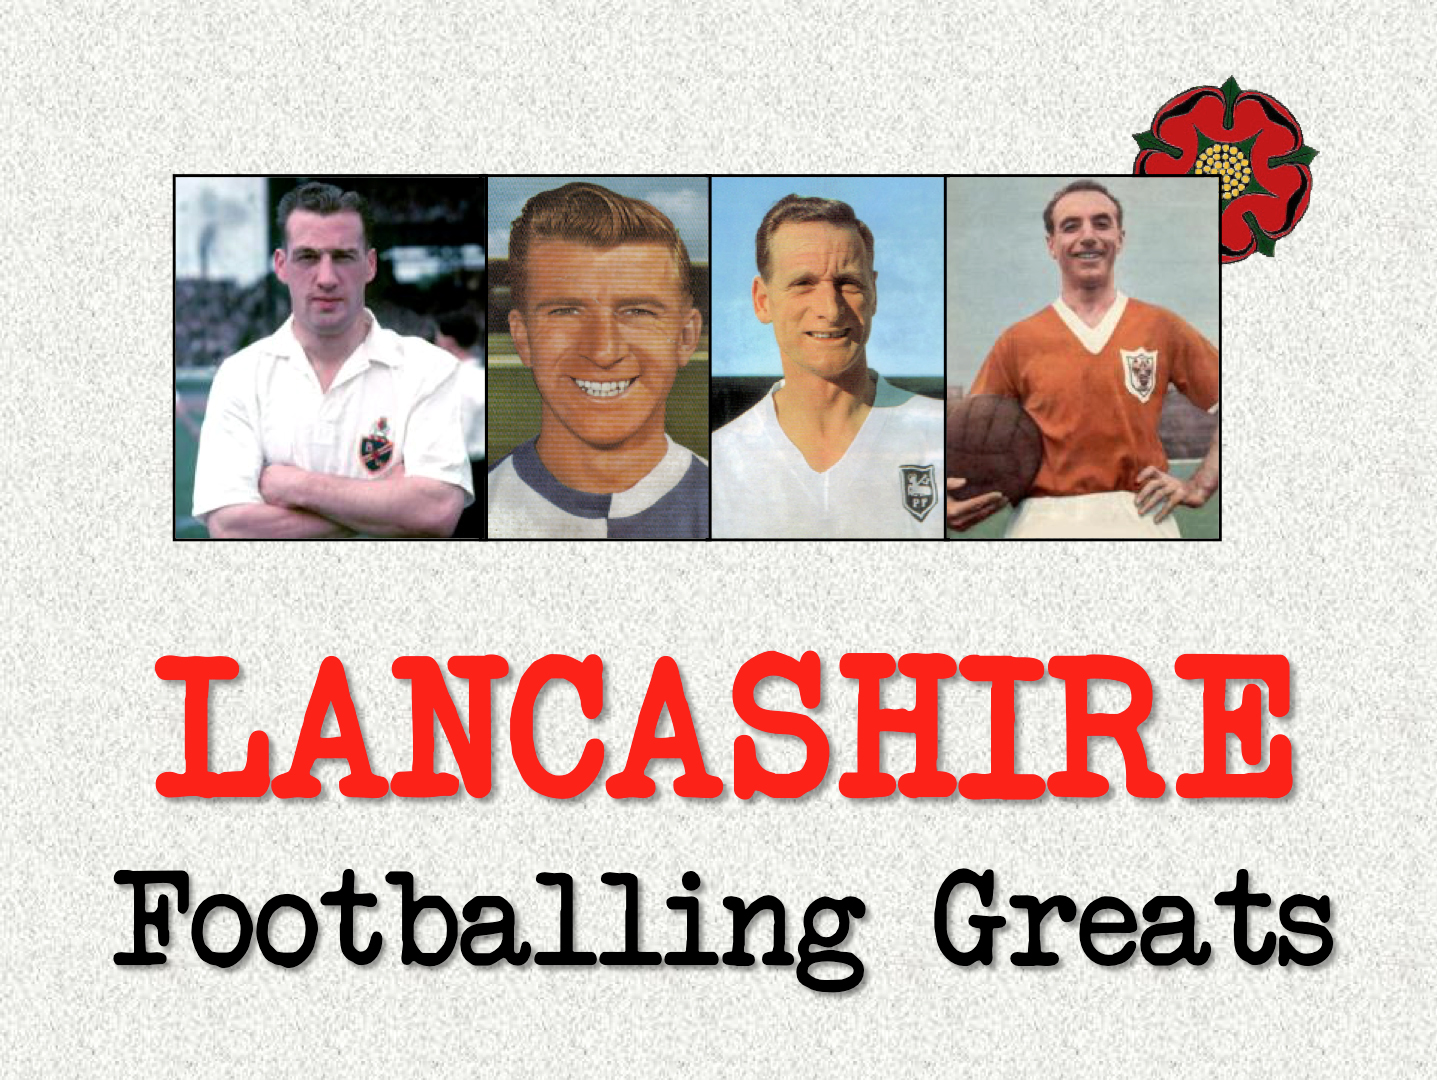 Popular Talk - Lancashire Footballing Greats